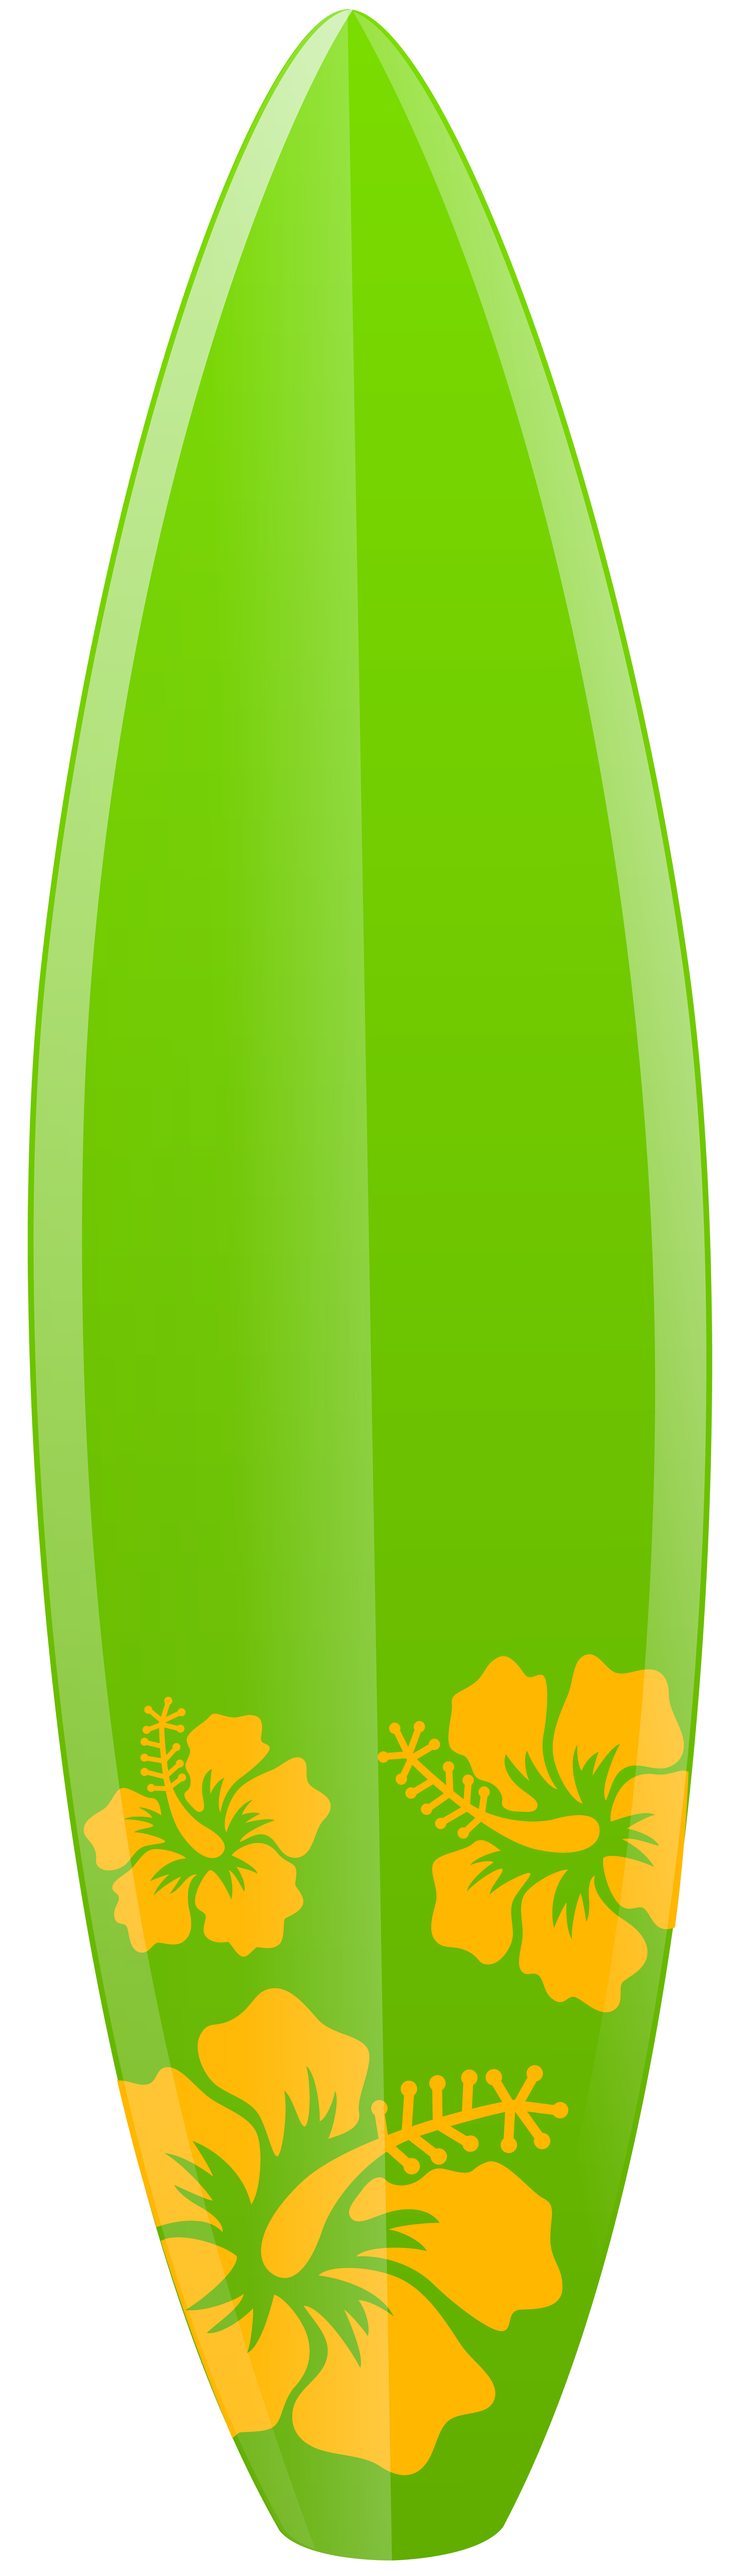 Surfboard clipart png. Clip art gallery yopriceville